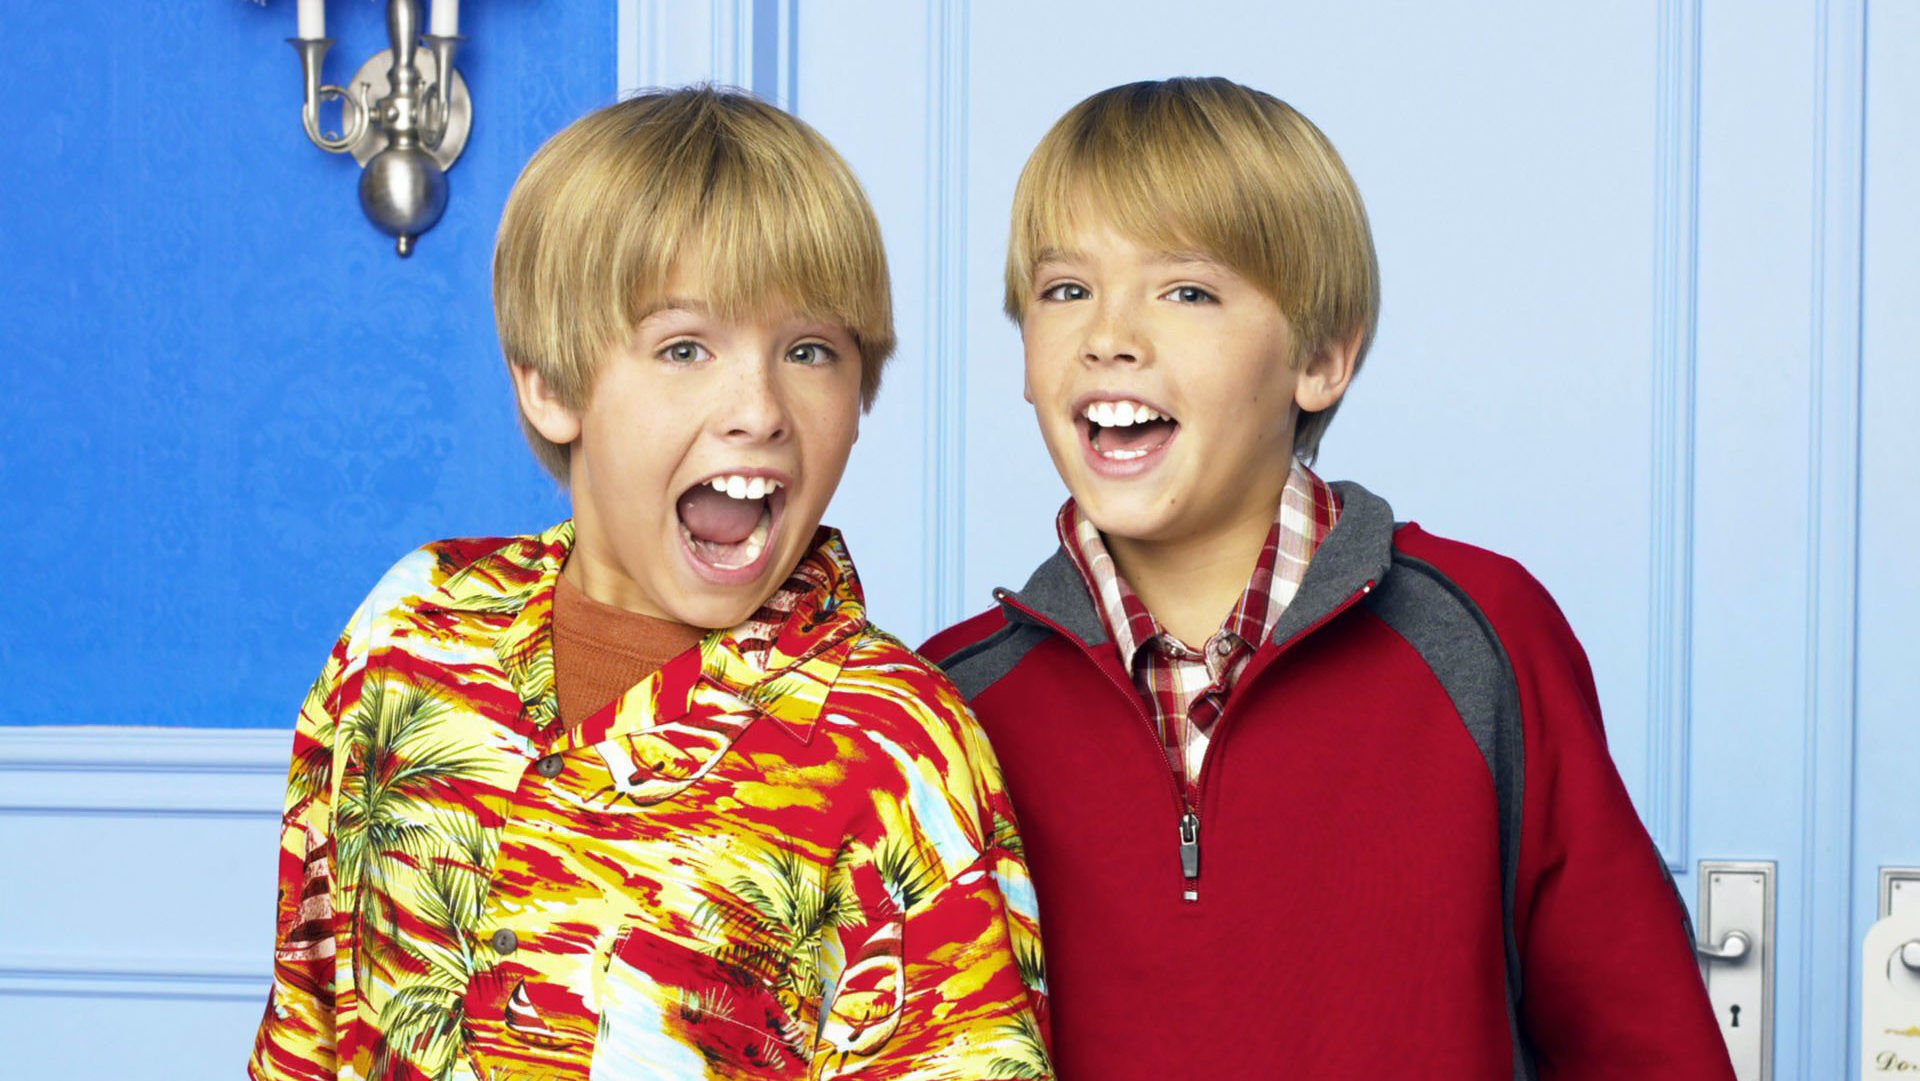 the-suite-life-of-zack-and-cody disney channel stars